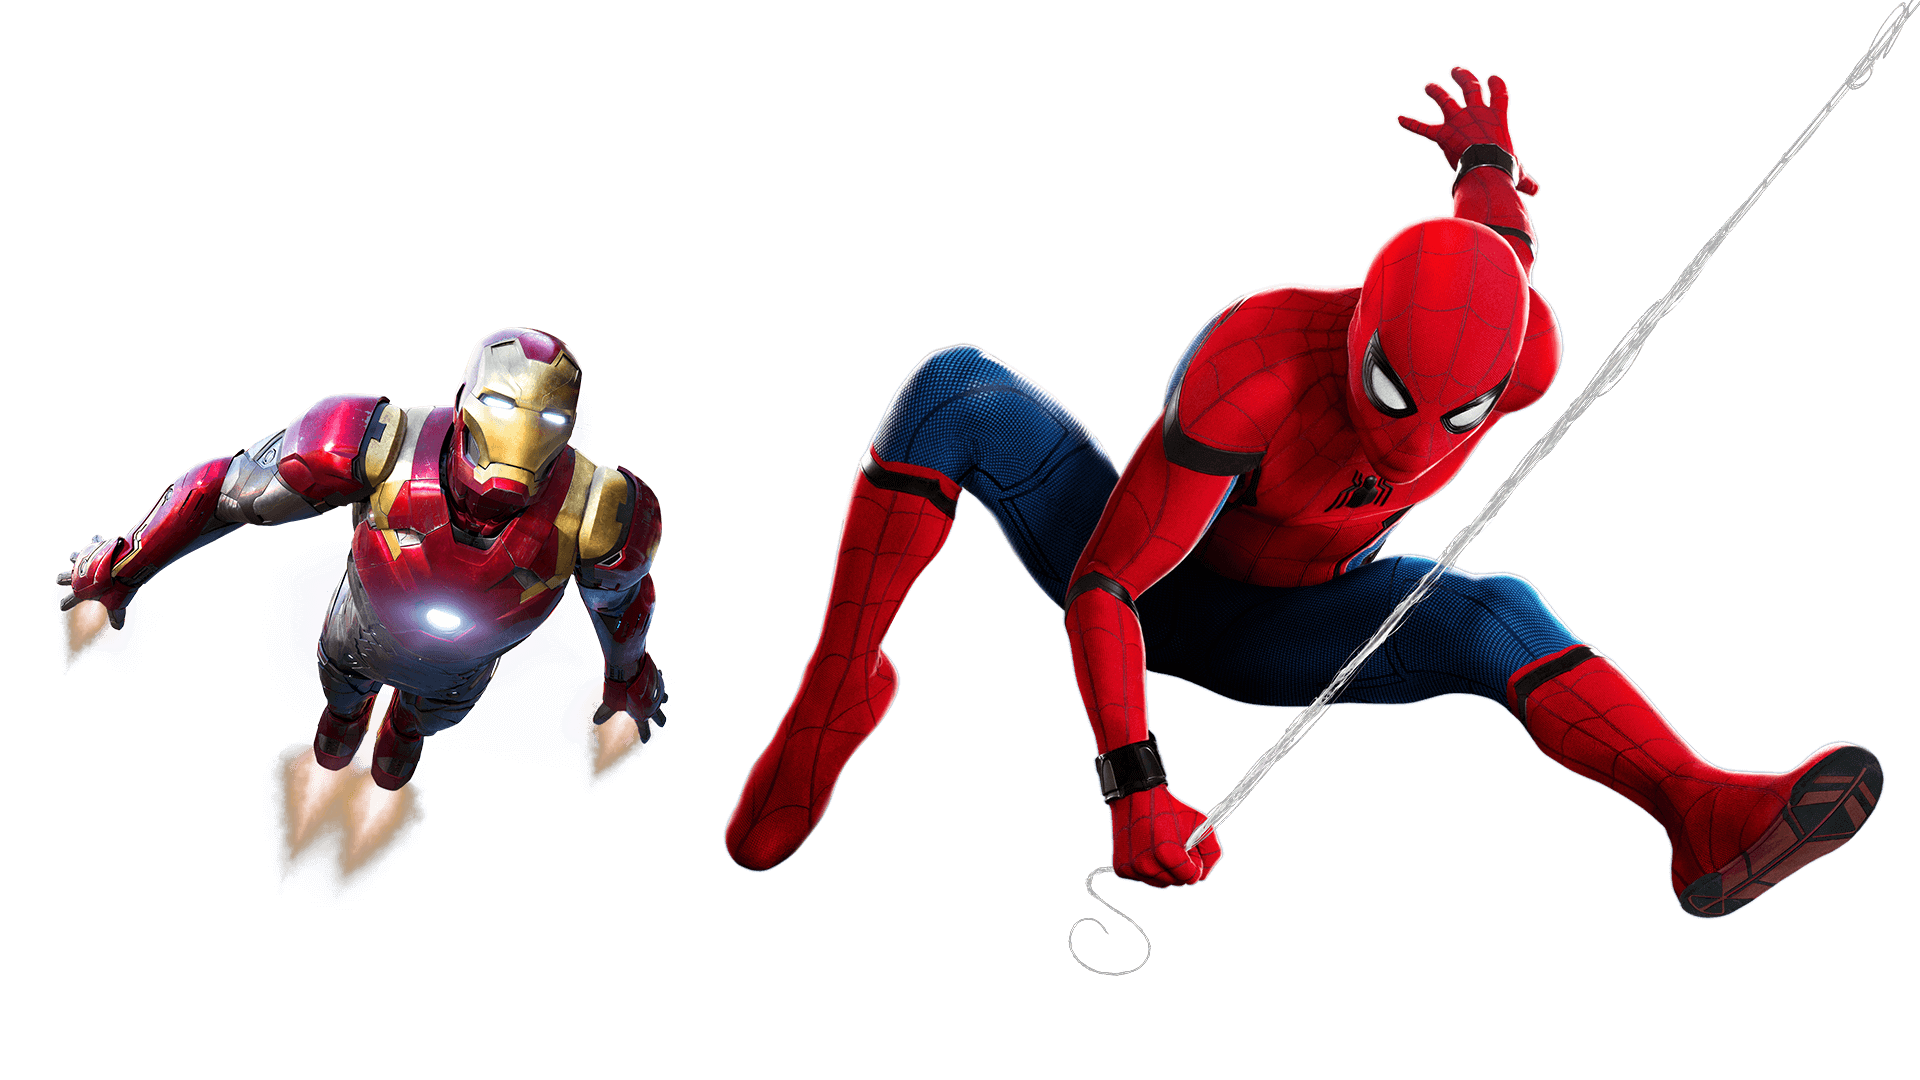 Spiderman homecoming png. Hd transparent images pluspng